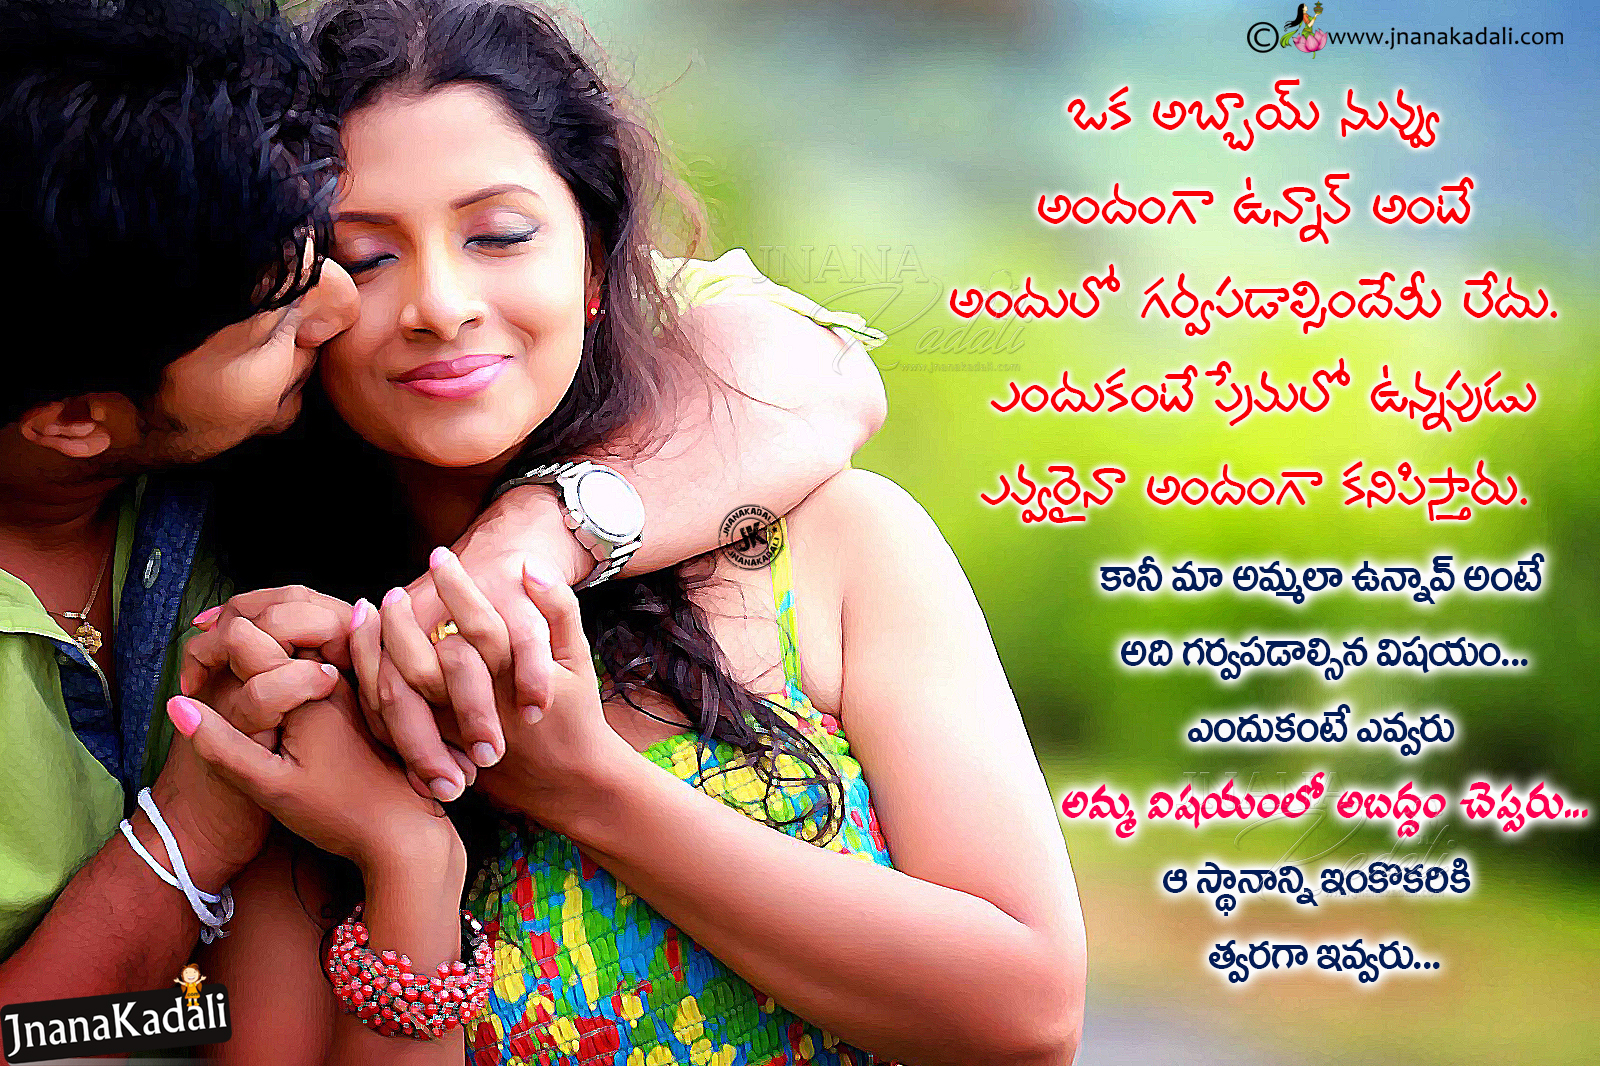 Heart Touching Wife And Husband Relationship Quotes In Telugu